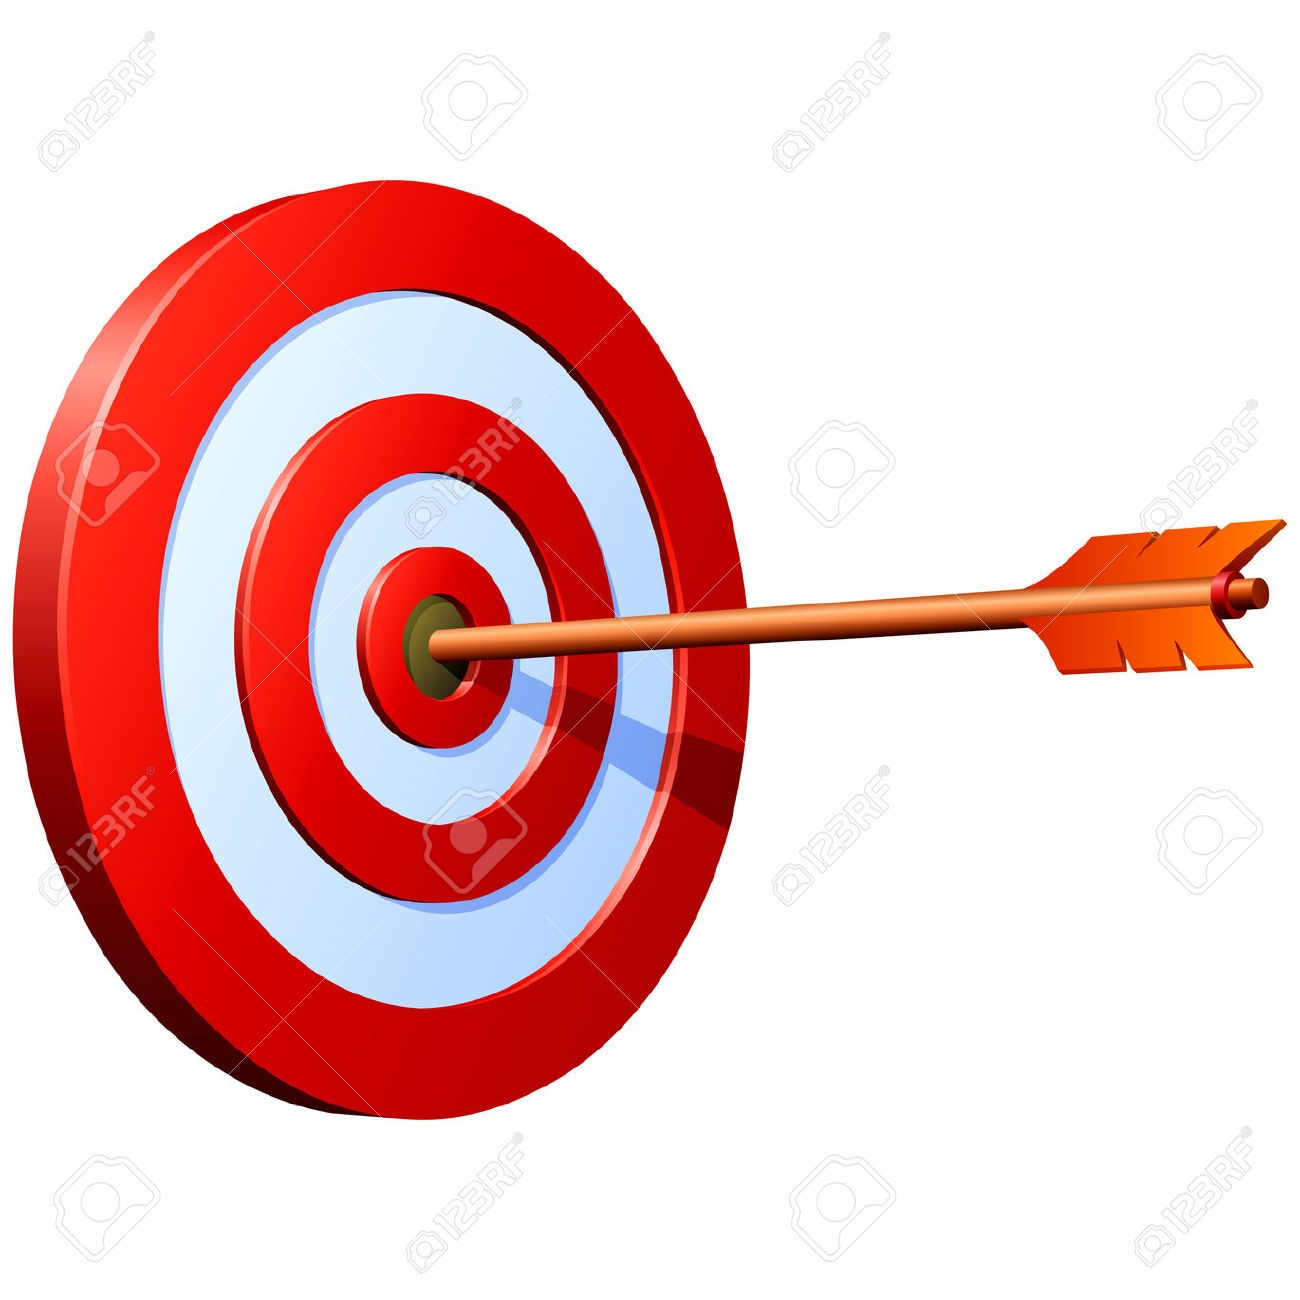 Shooting arrow clipart png library Shooting arrow clipart - ClipartFest png library